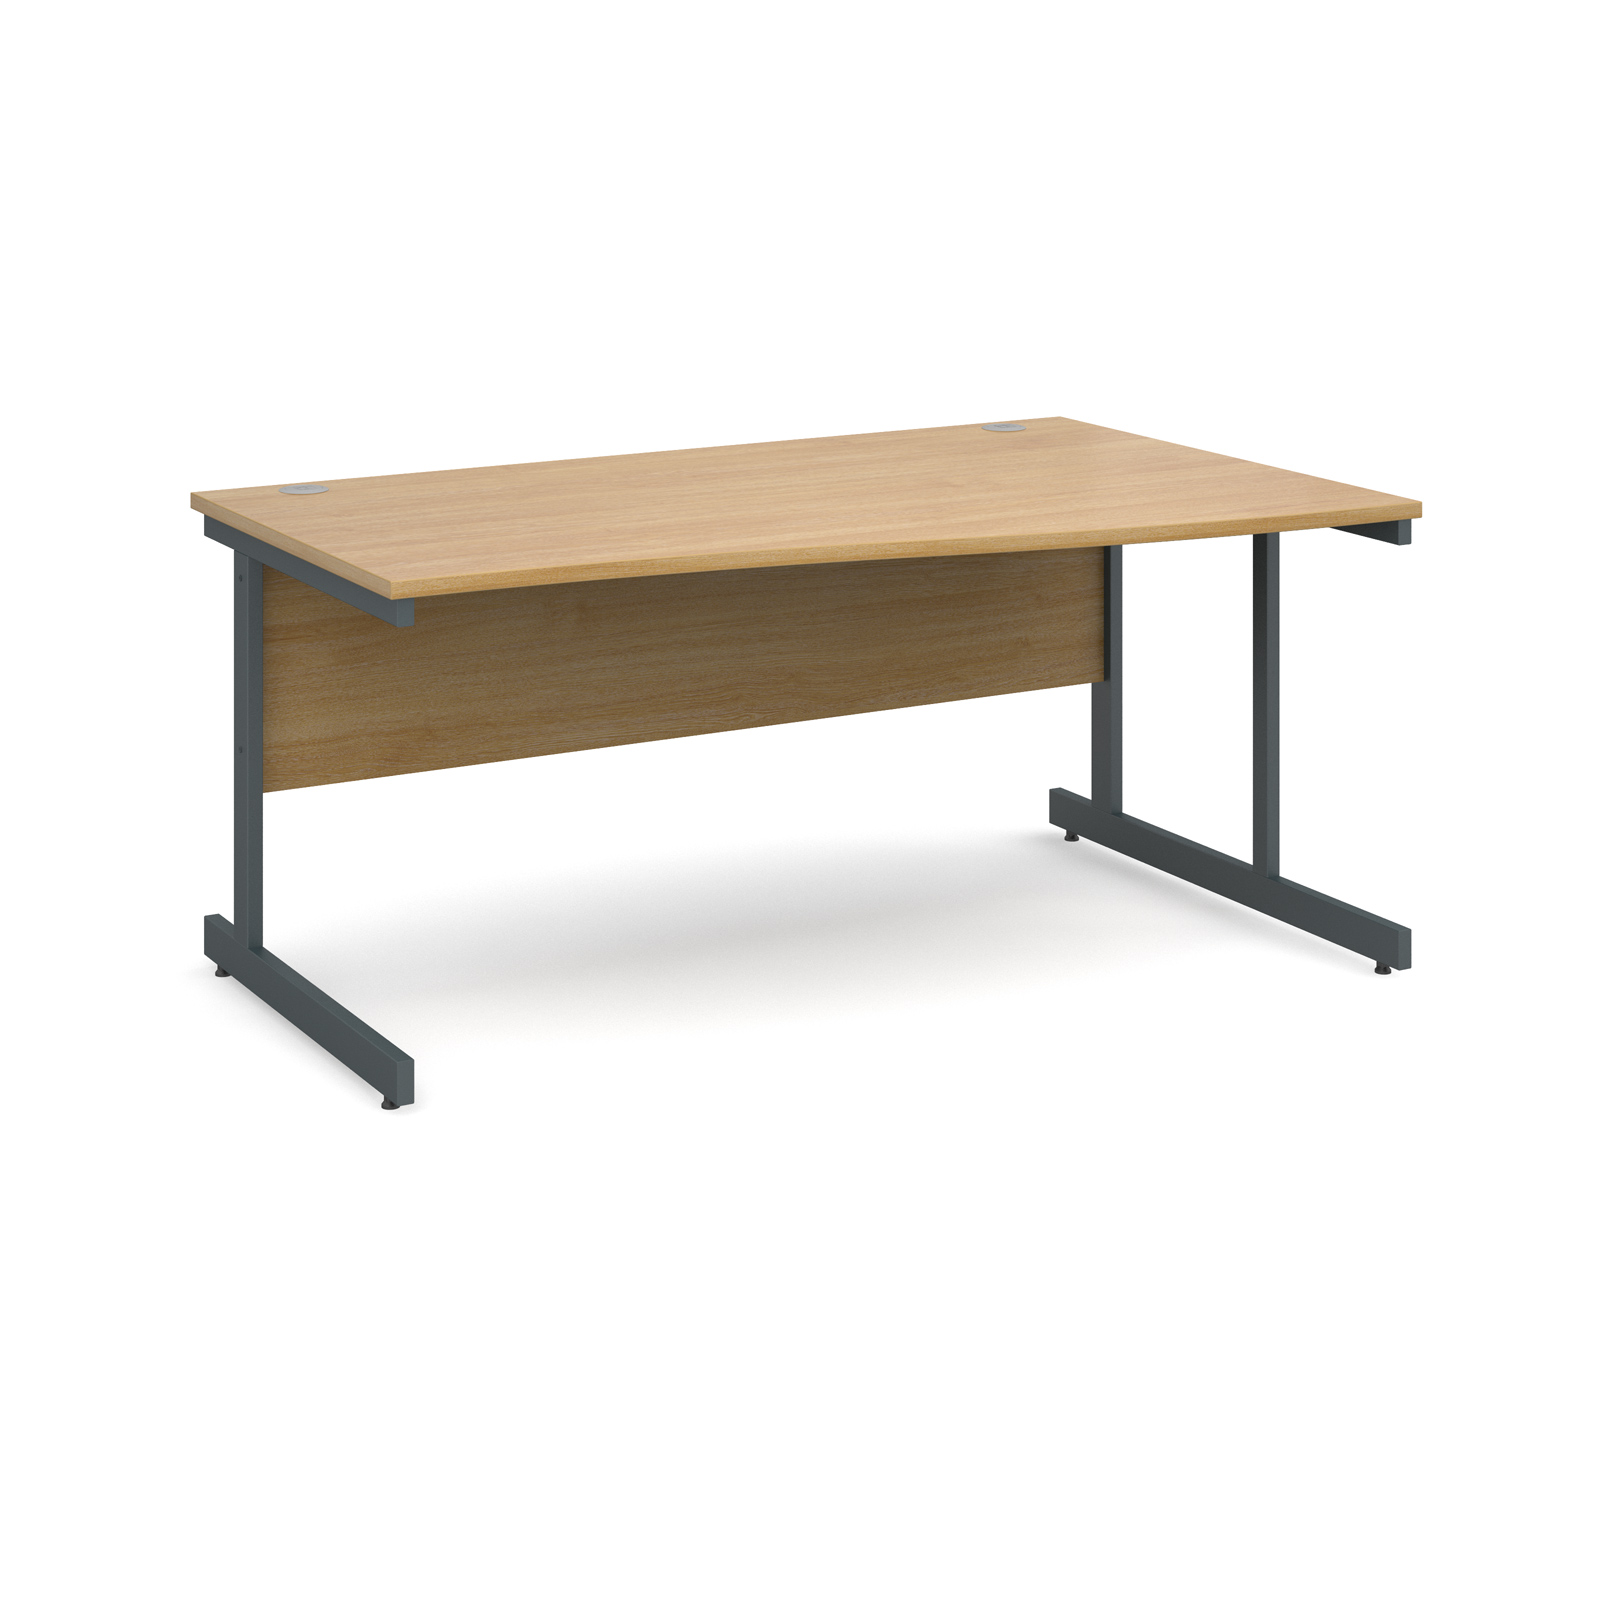 Contract 25 right hand wave desk 1600mm - graphite cantilever frame, oak top